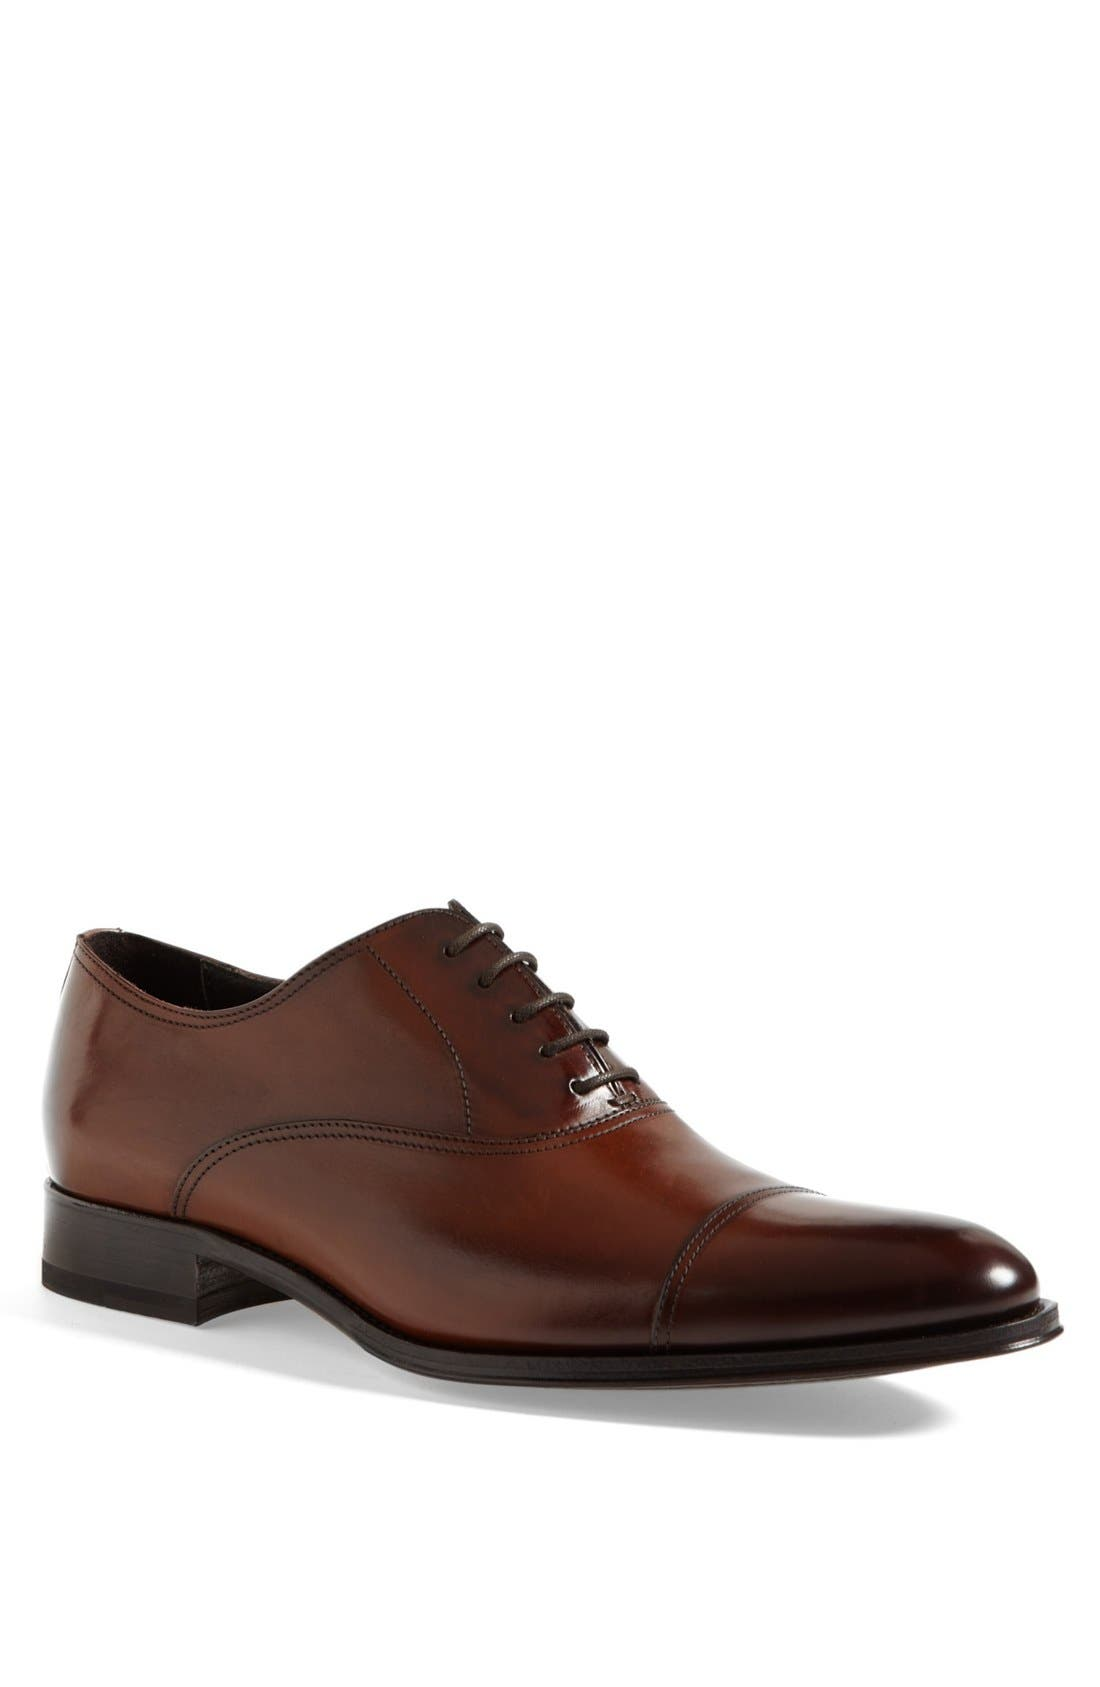 Alternate Image 1 Selected - To Boot New York Brandon Cap Toe Oxford (Nordstrom Exclusive) (Men)